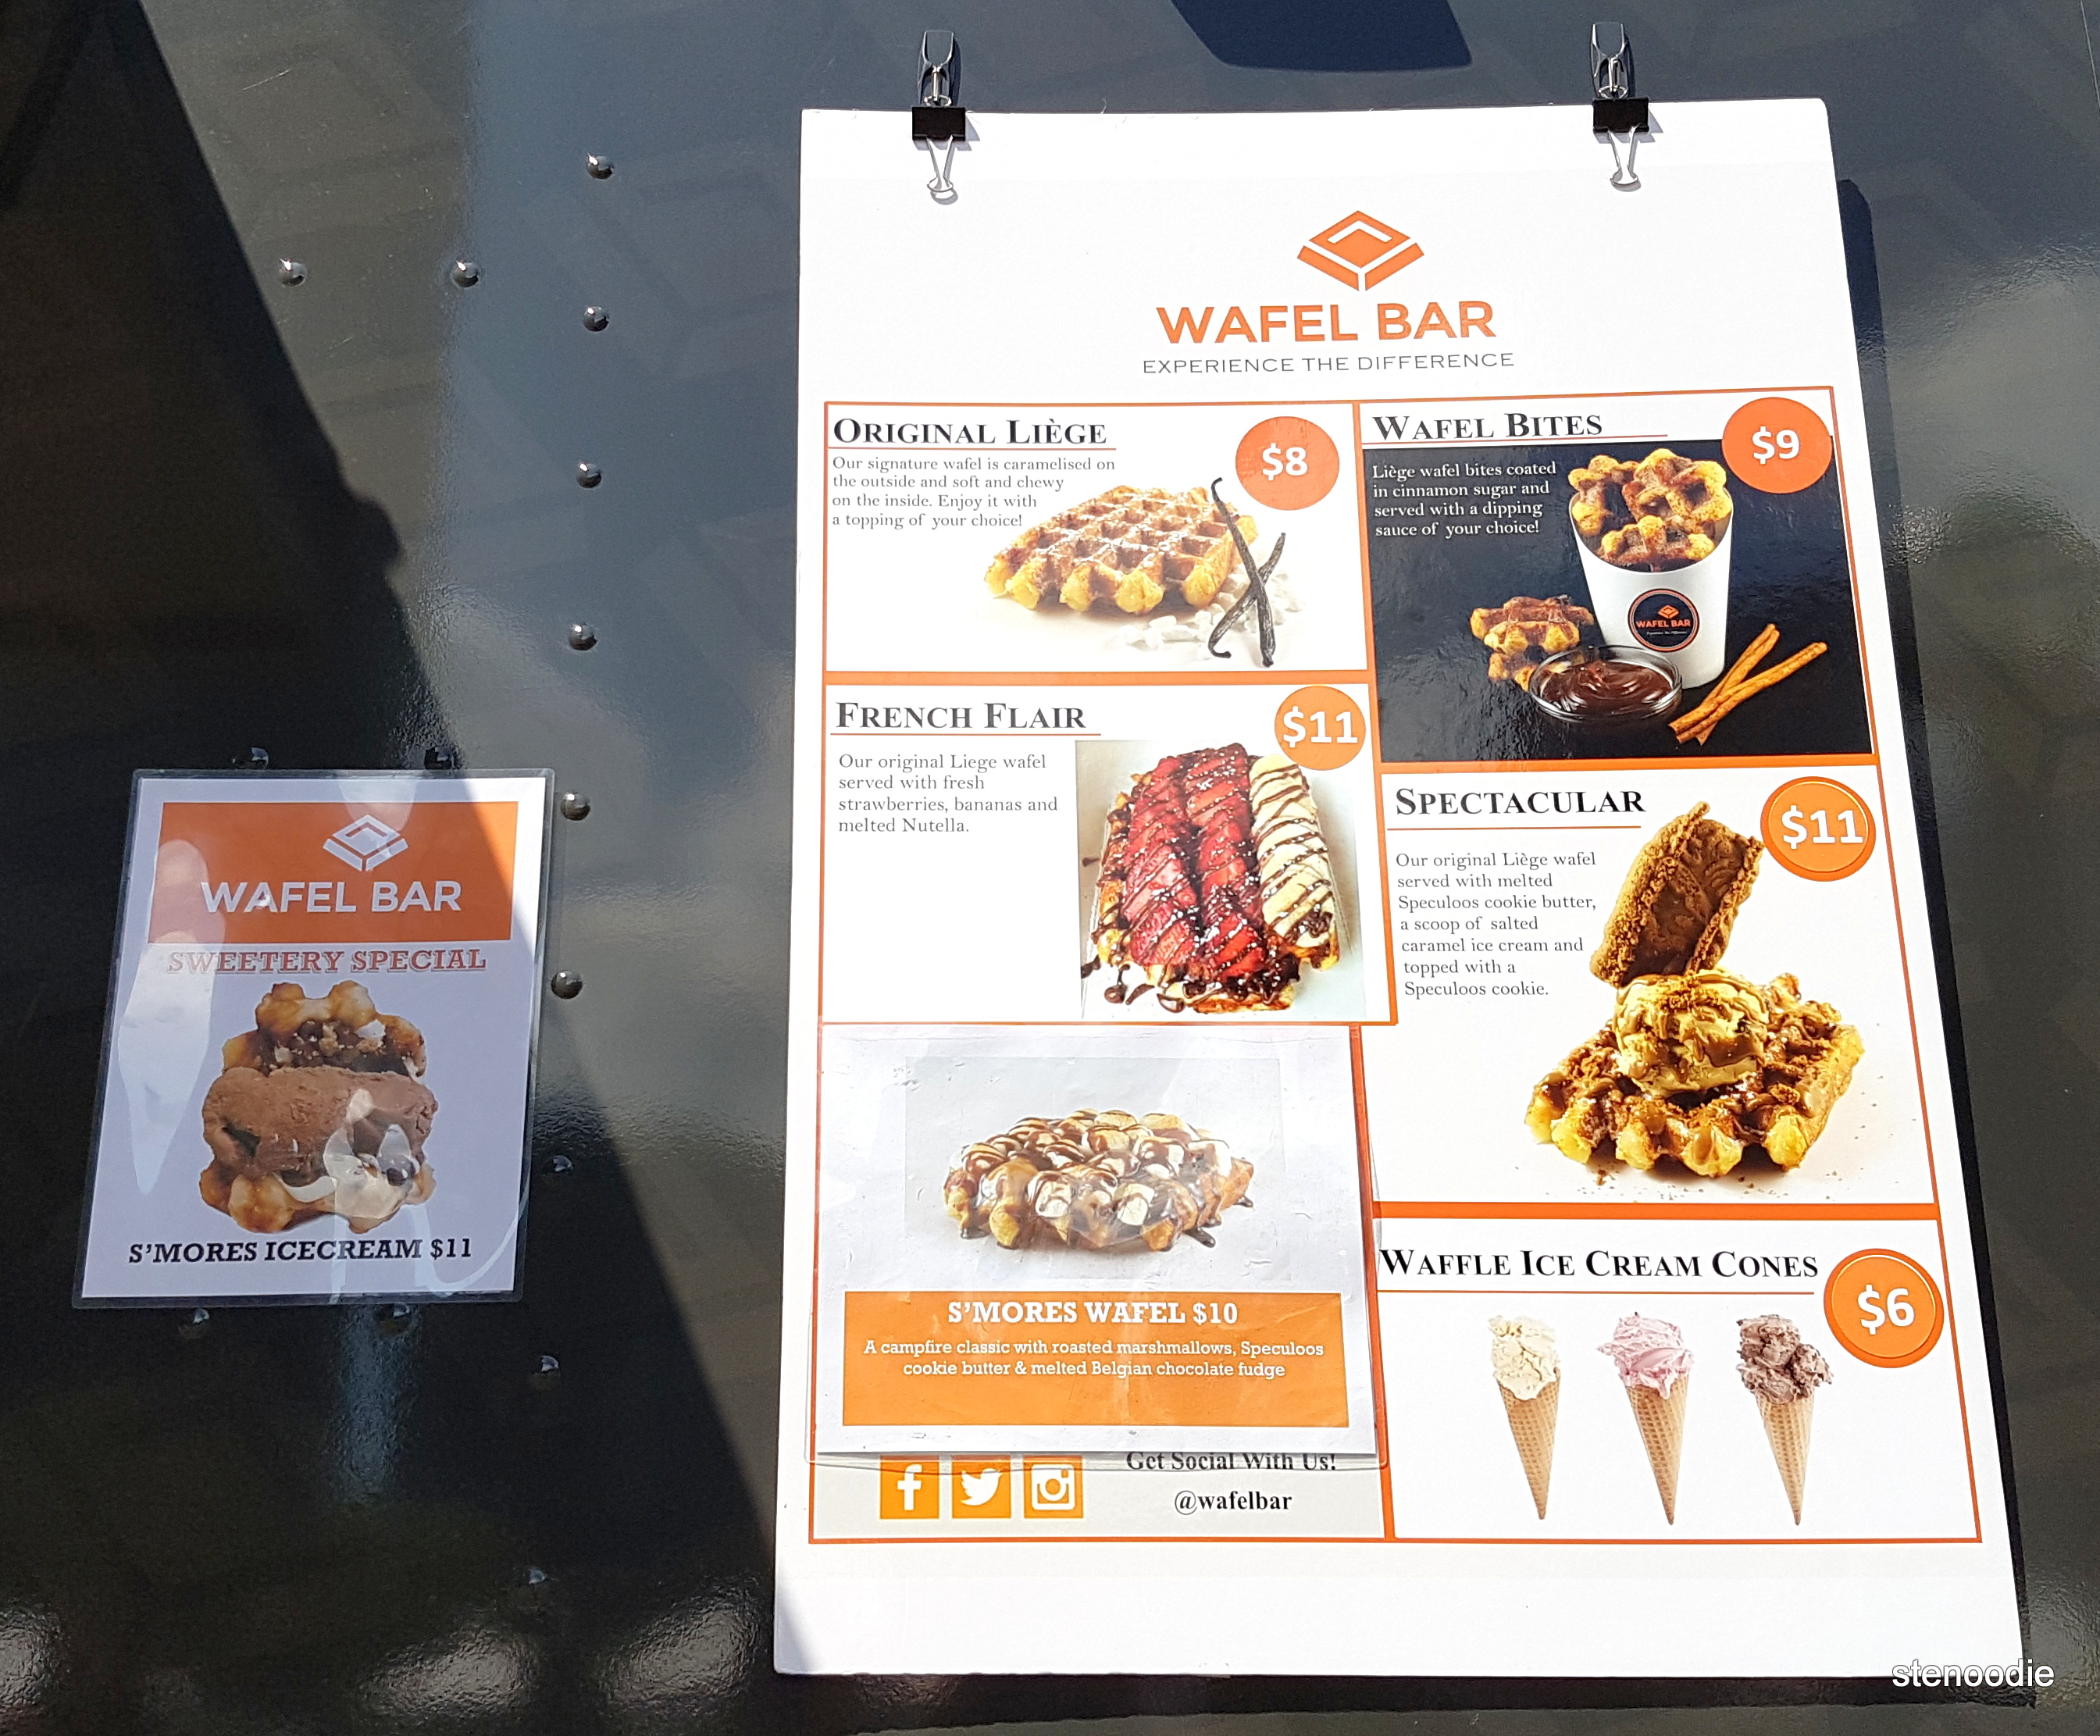 Wafel Bar Sweetery Toronto menu and prices